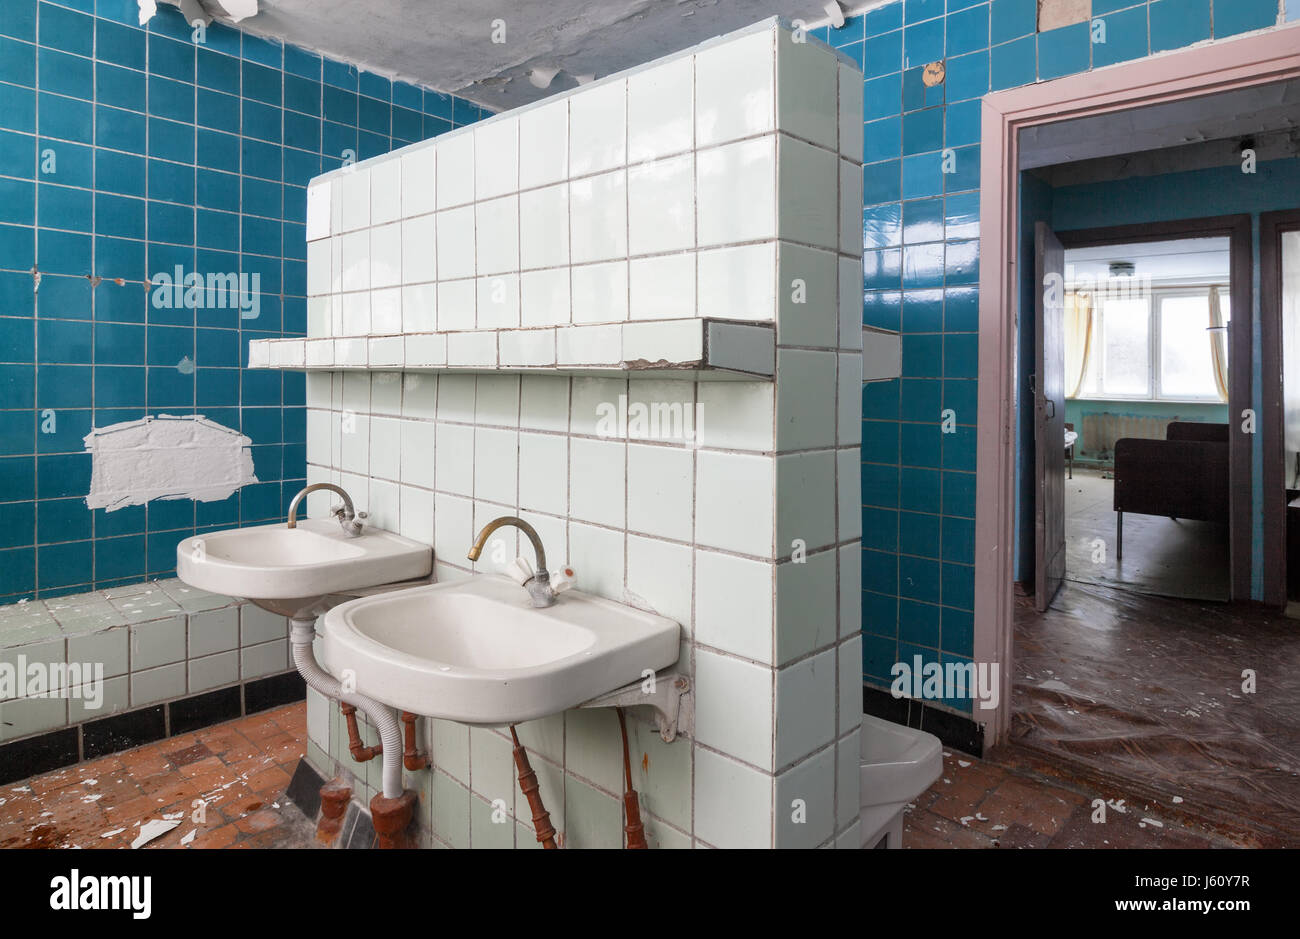 Bathroom with wash hand basin in the abandoned building of the children's pioneer camp - Stock Image